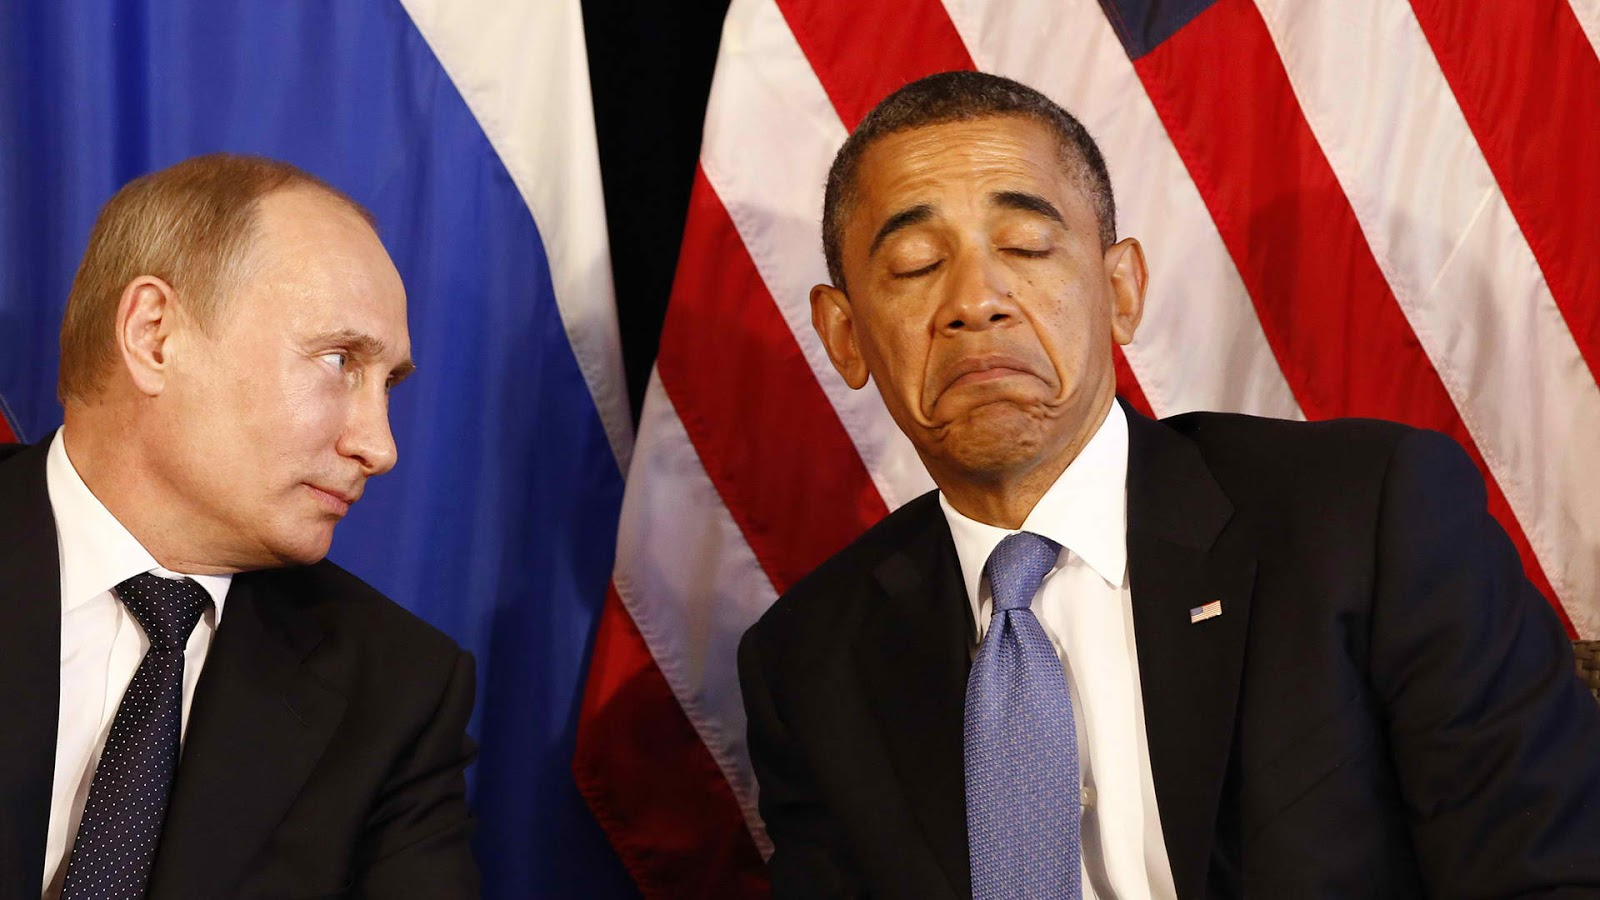 WATCH! Russian President Putin Gives His Last Warning To US And Obama